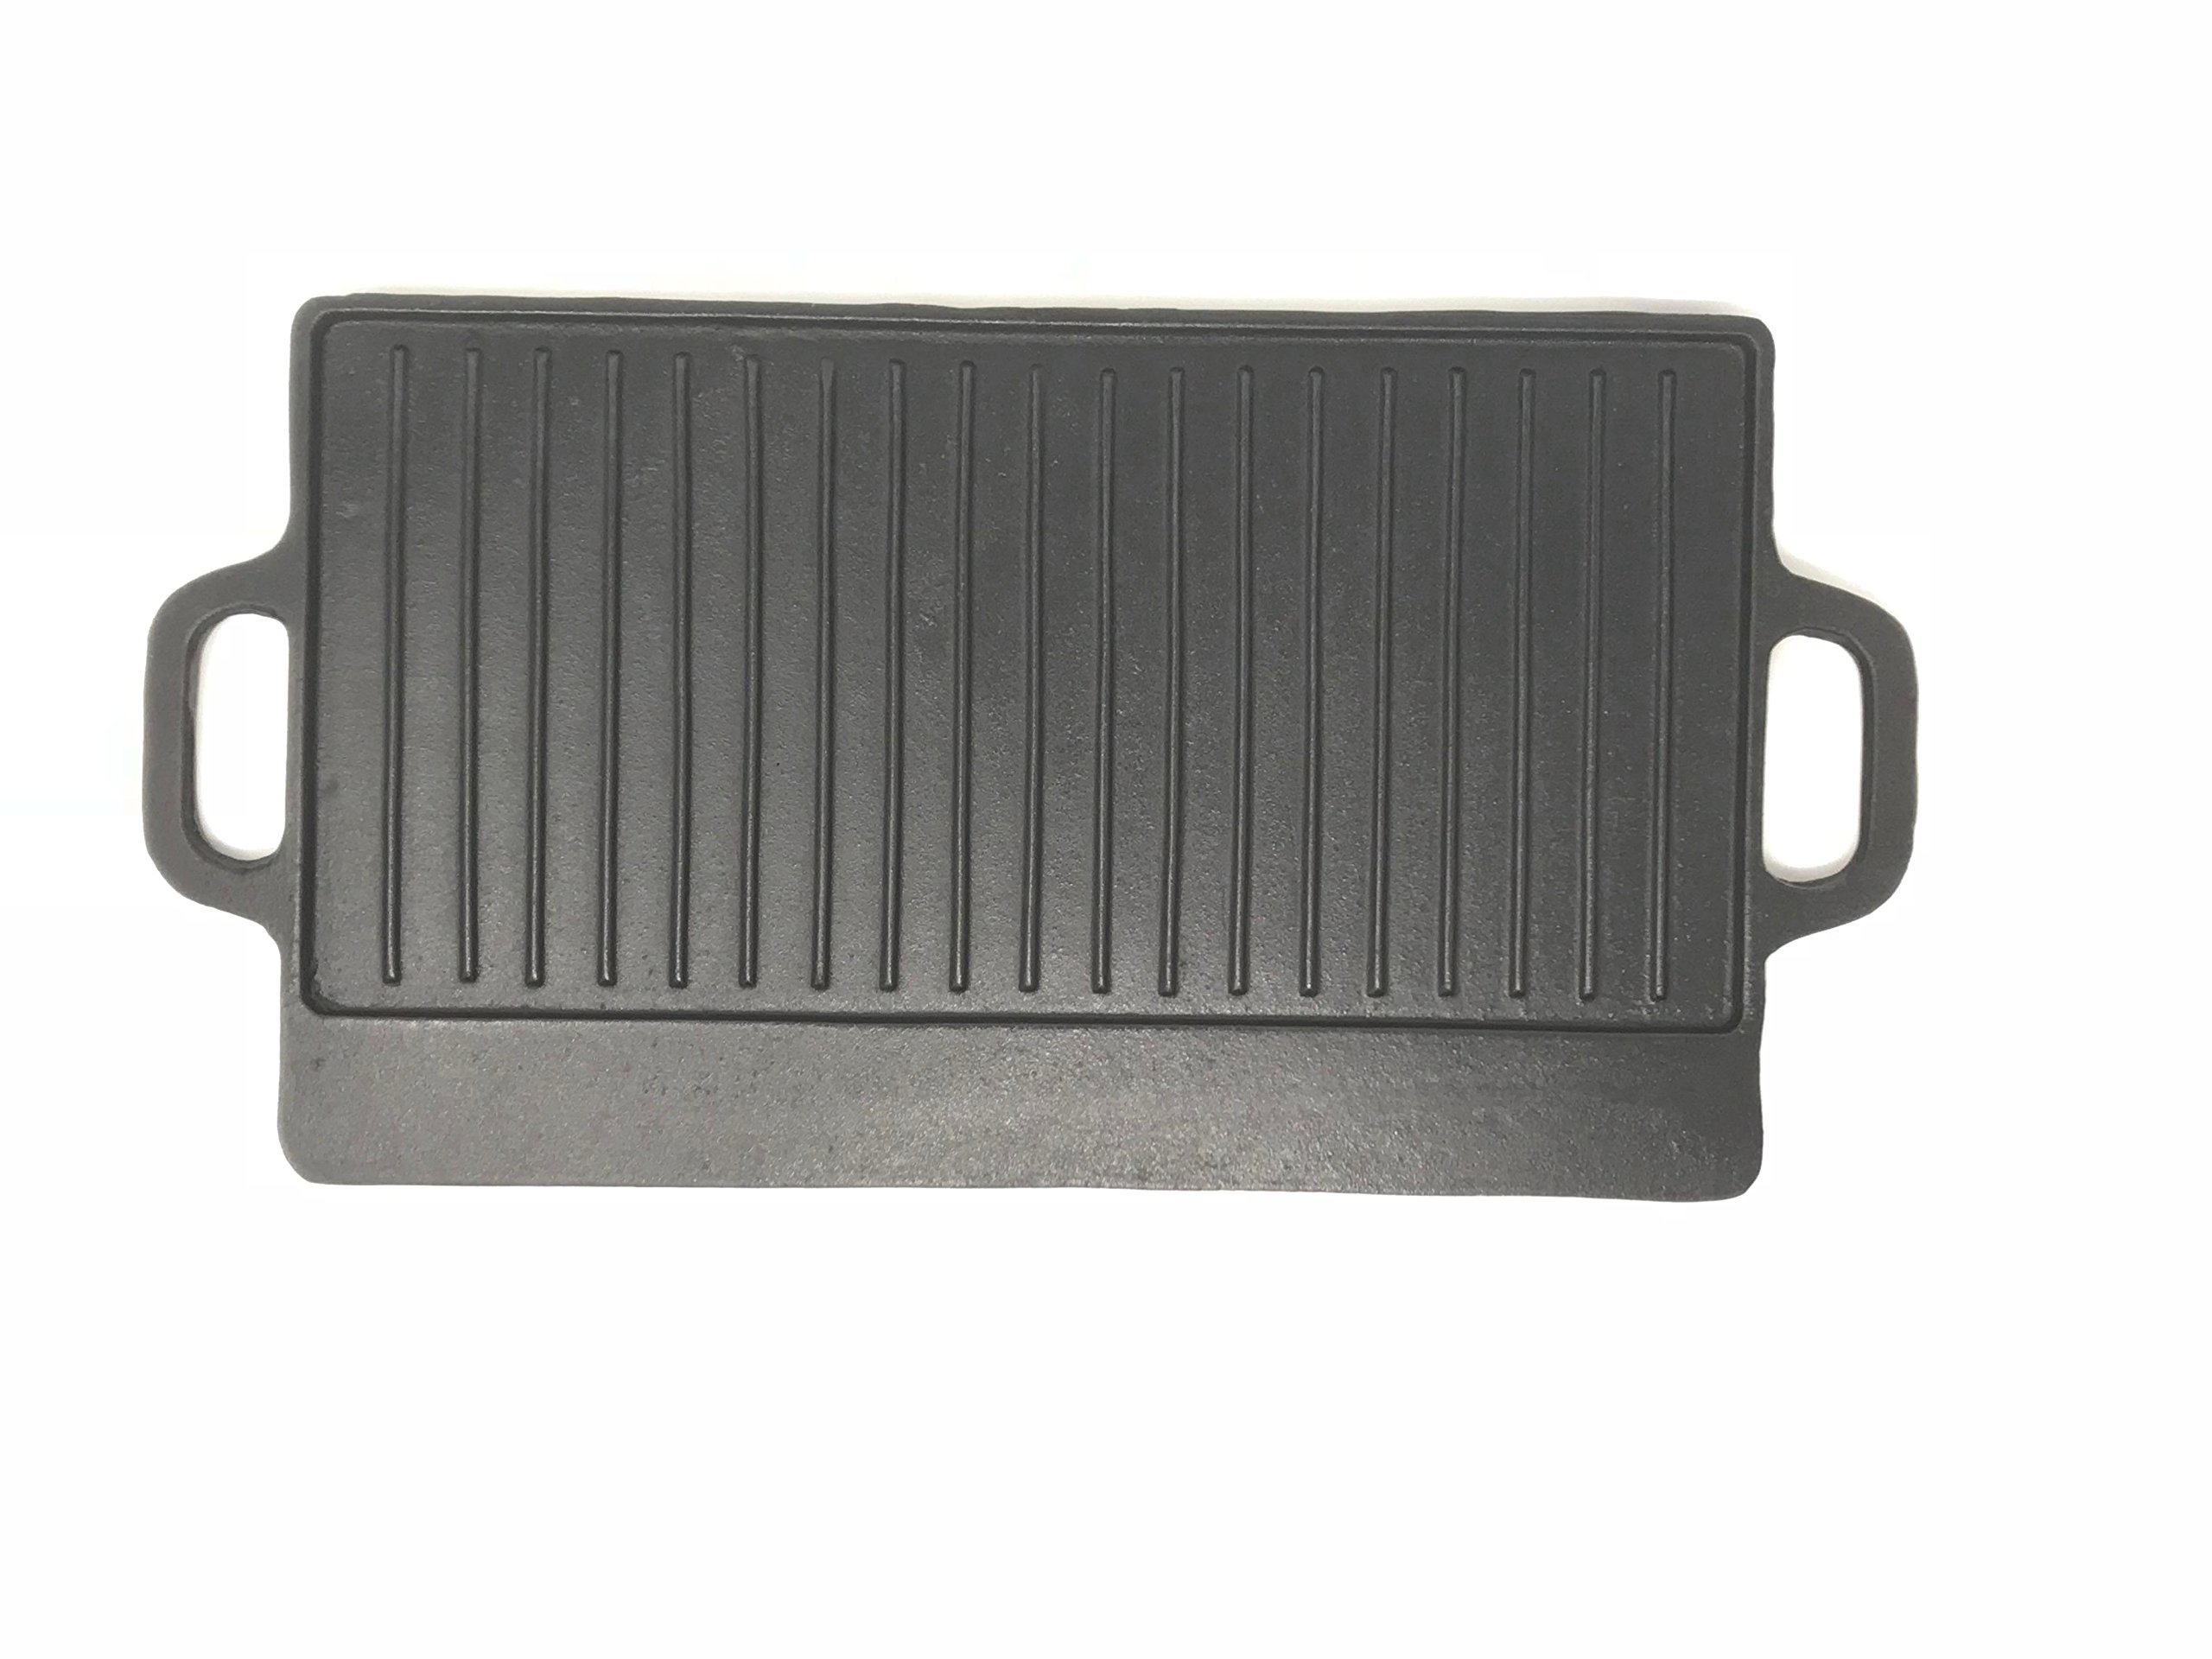 Aura Outdoor Products Rectangle Cast Iron Griddle - Perfect for Gas Grills and Stove Tops by Aura Outdoor Products